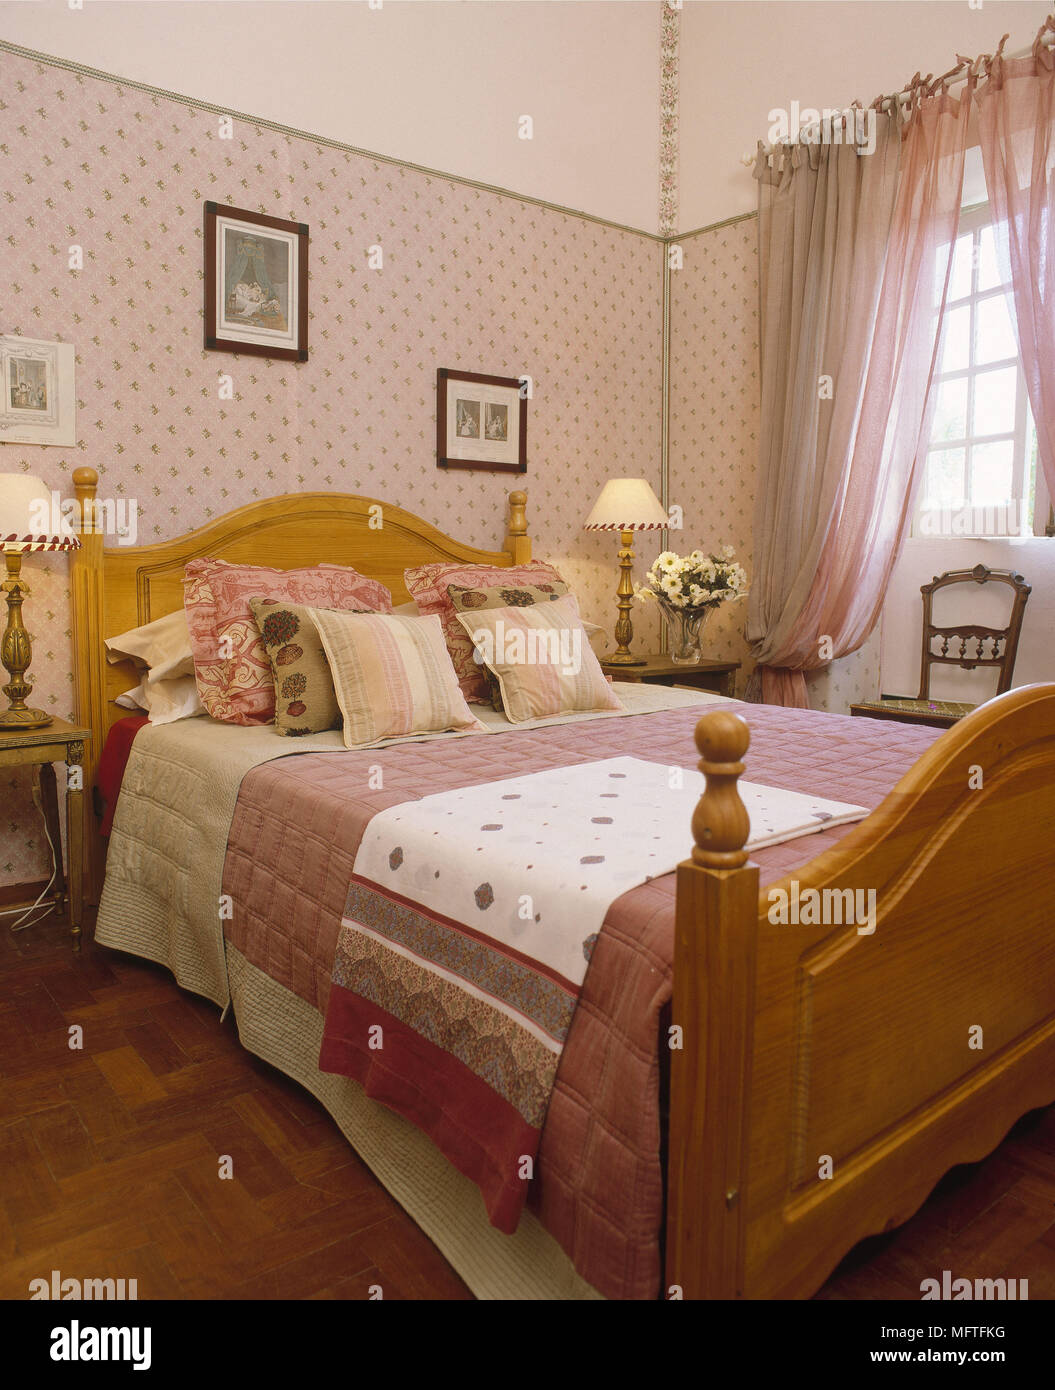 Pine double bed in pink bedroom - Stock Image